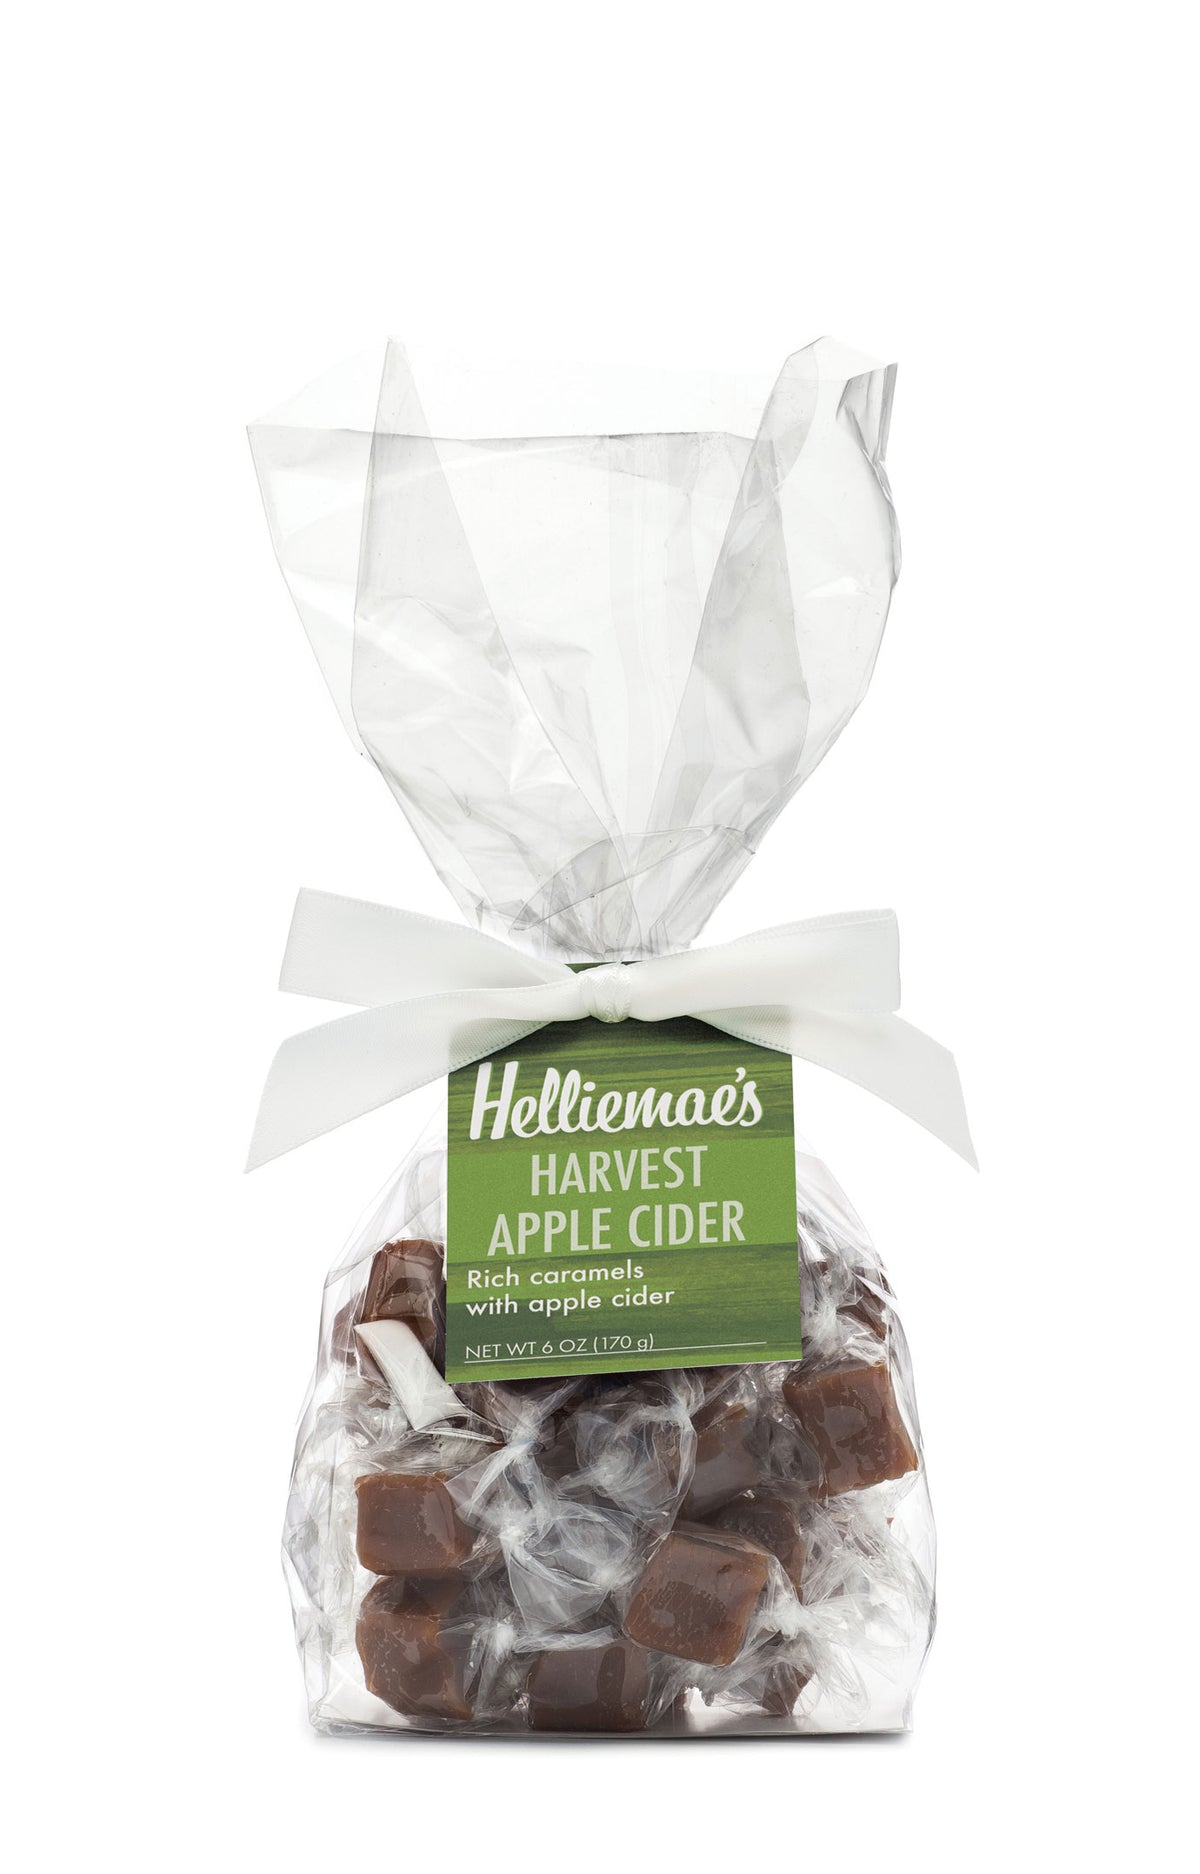 Helliemae's Harvest Apple Cider Caramels medium gift bag, clear cello bag with gathered top, fastened with white satin ribbon and colorful green hangtag, with effect of milk paint on a barn wall.